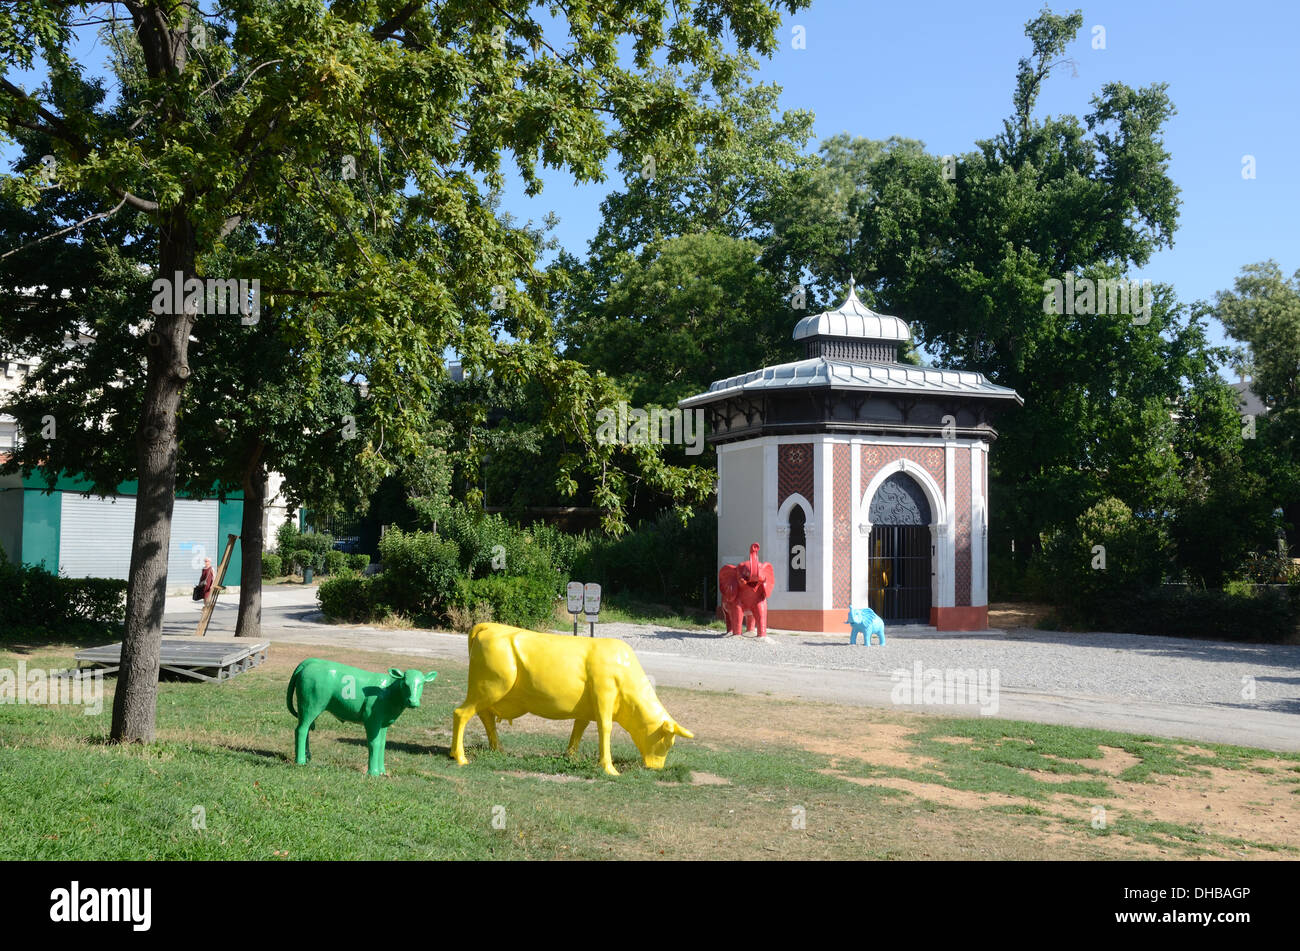 Elephant House or Animal House & Plastic Resin Animals at Marseille Funny Zoo Marseille France - Stock Image